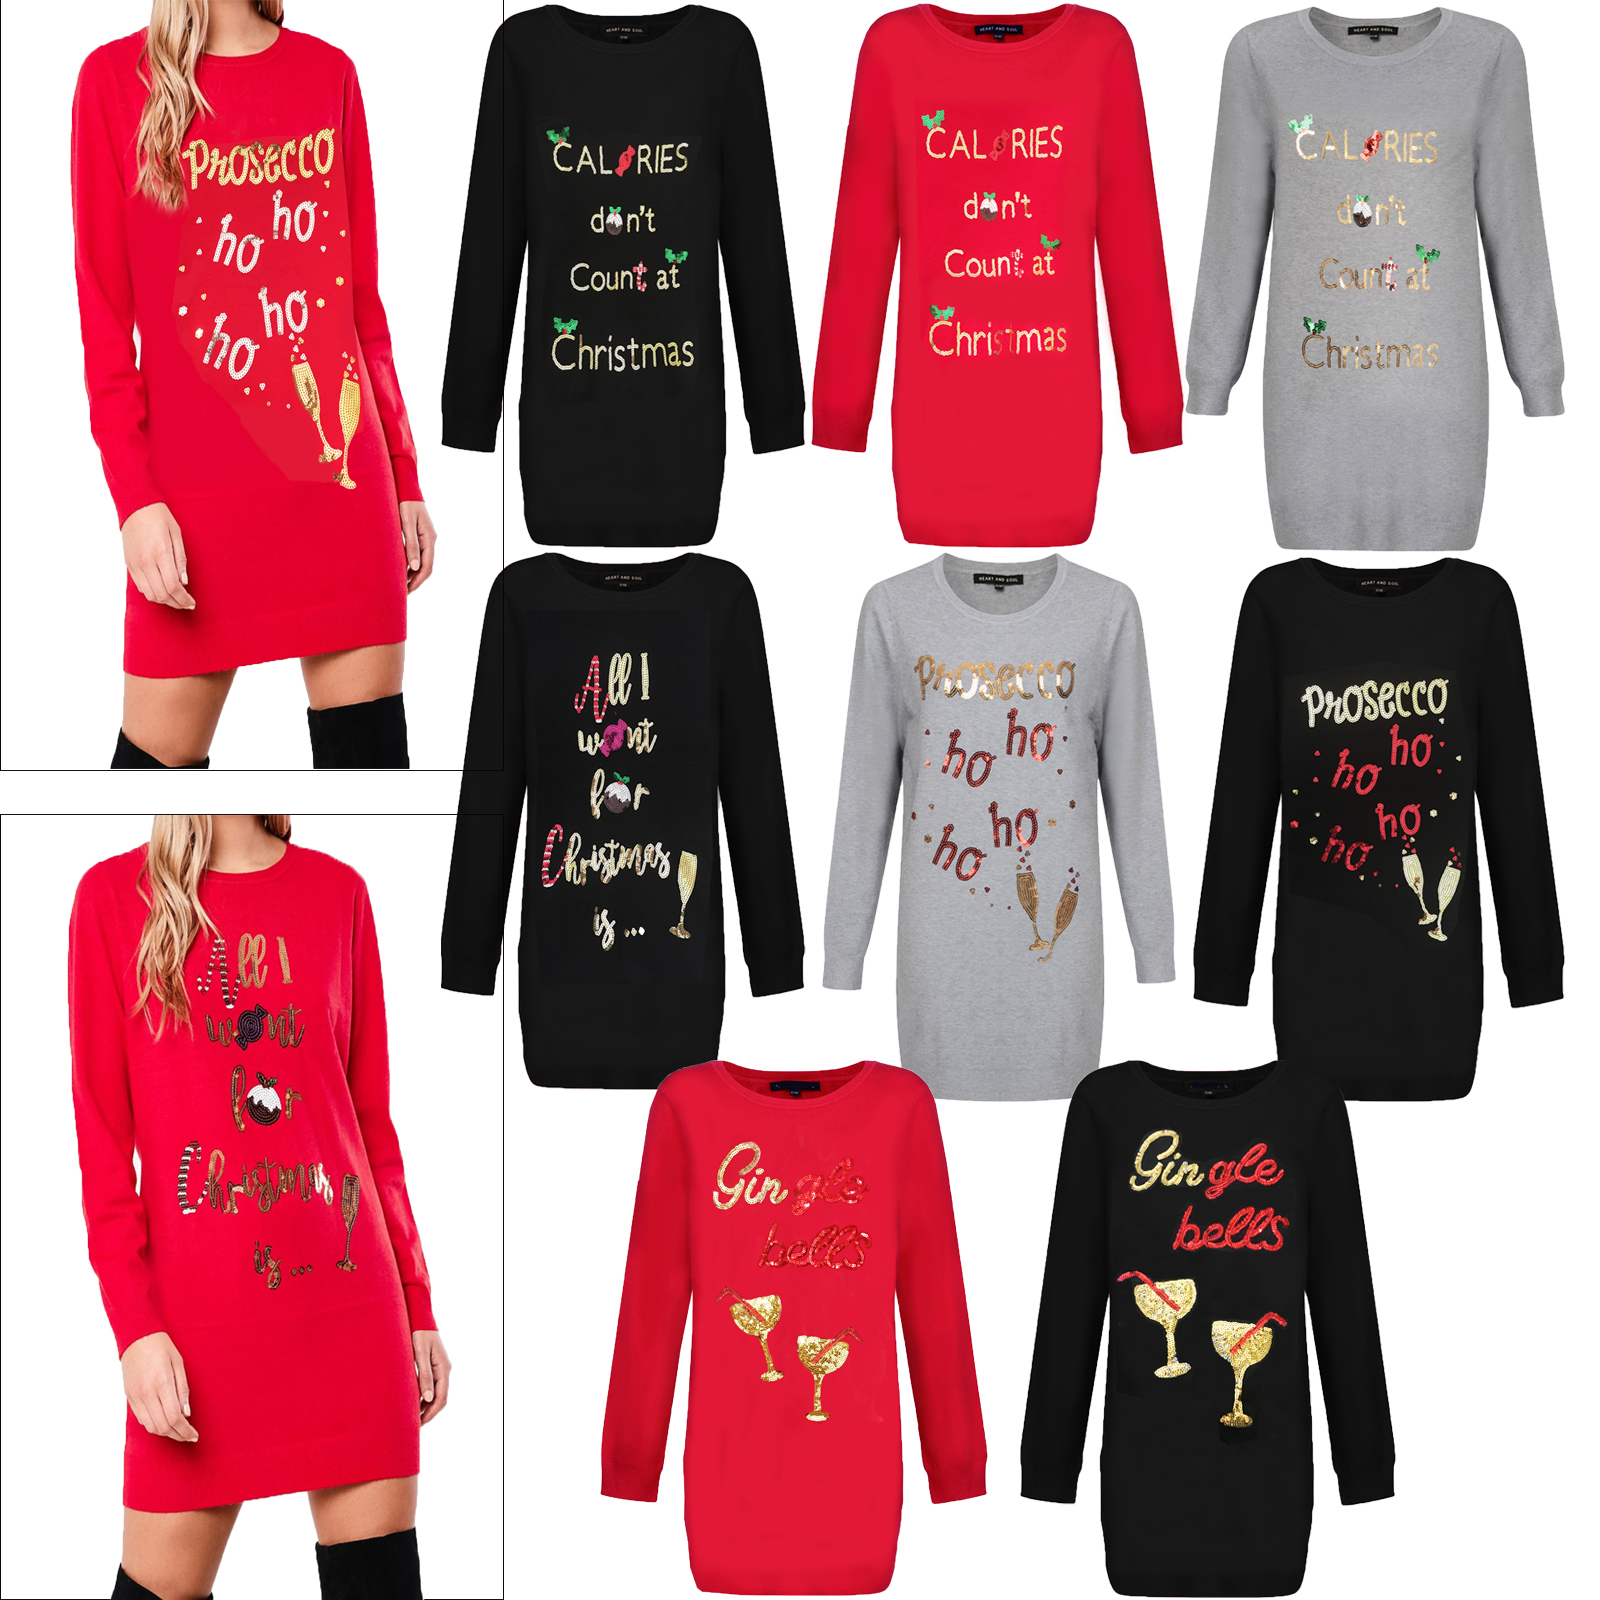 Christmas Tops.Details About Heart And Soul Womens Sequin Christmas Tunic Jumpers Ladies Novelty Knitted Tops